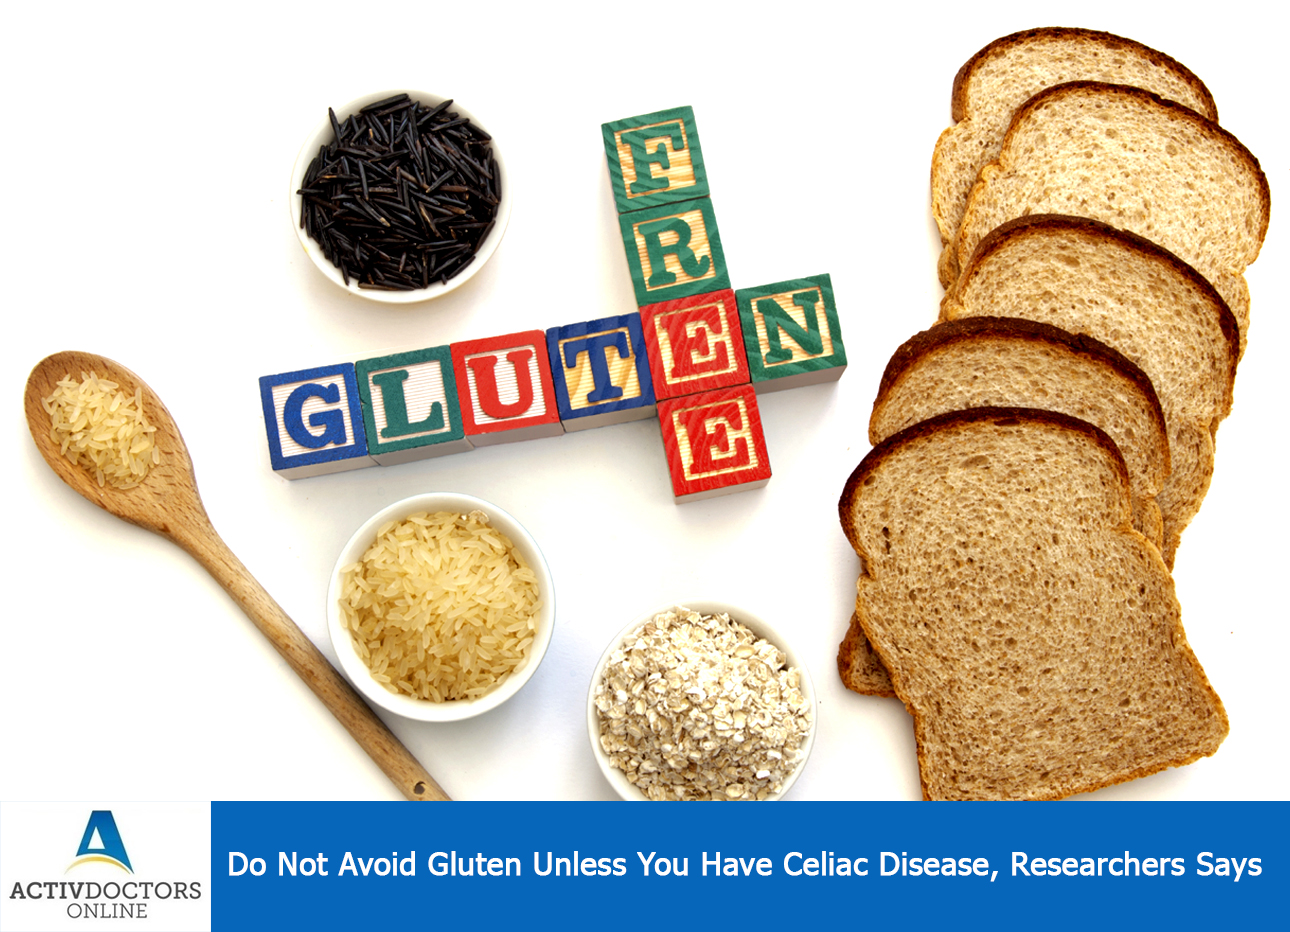 Do Not Avoid Gluten Unless You Have Celiac Disease, Researchers Says